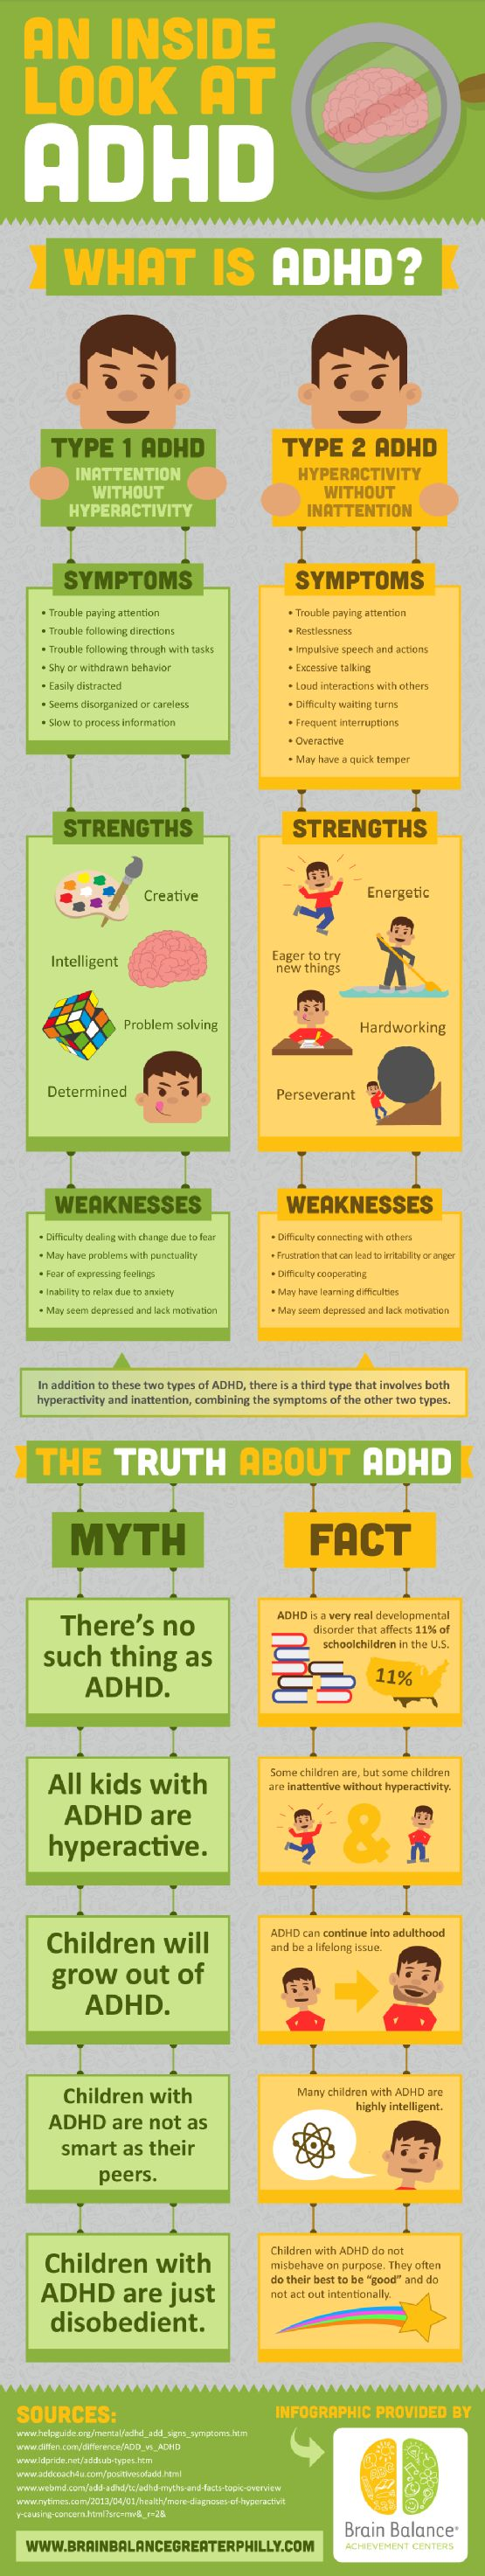 An Inside Look At ADHD - Qué es? #INFOGRAPHIC #infografía by @BrainBalance_PA